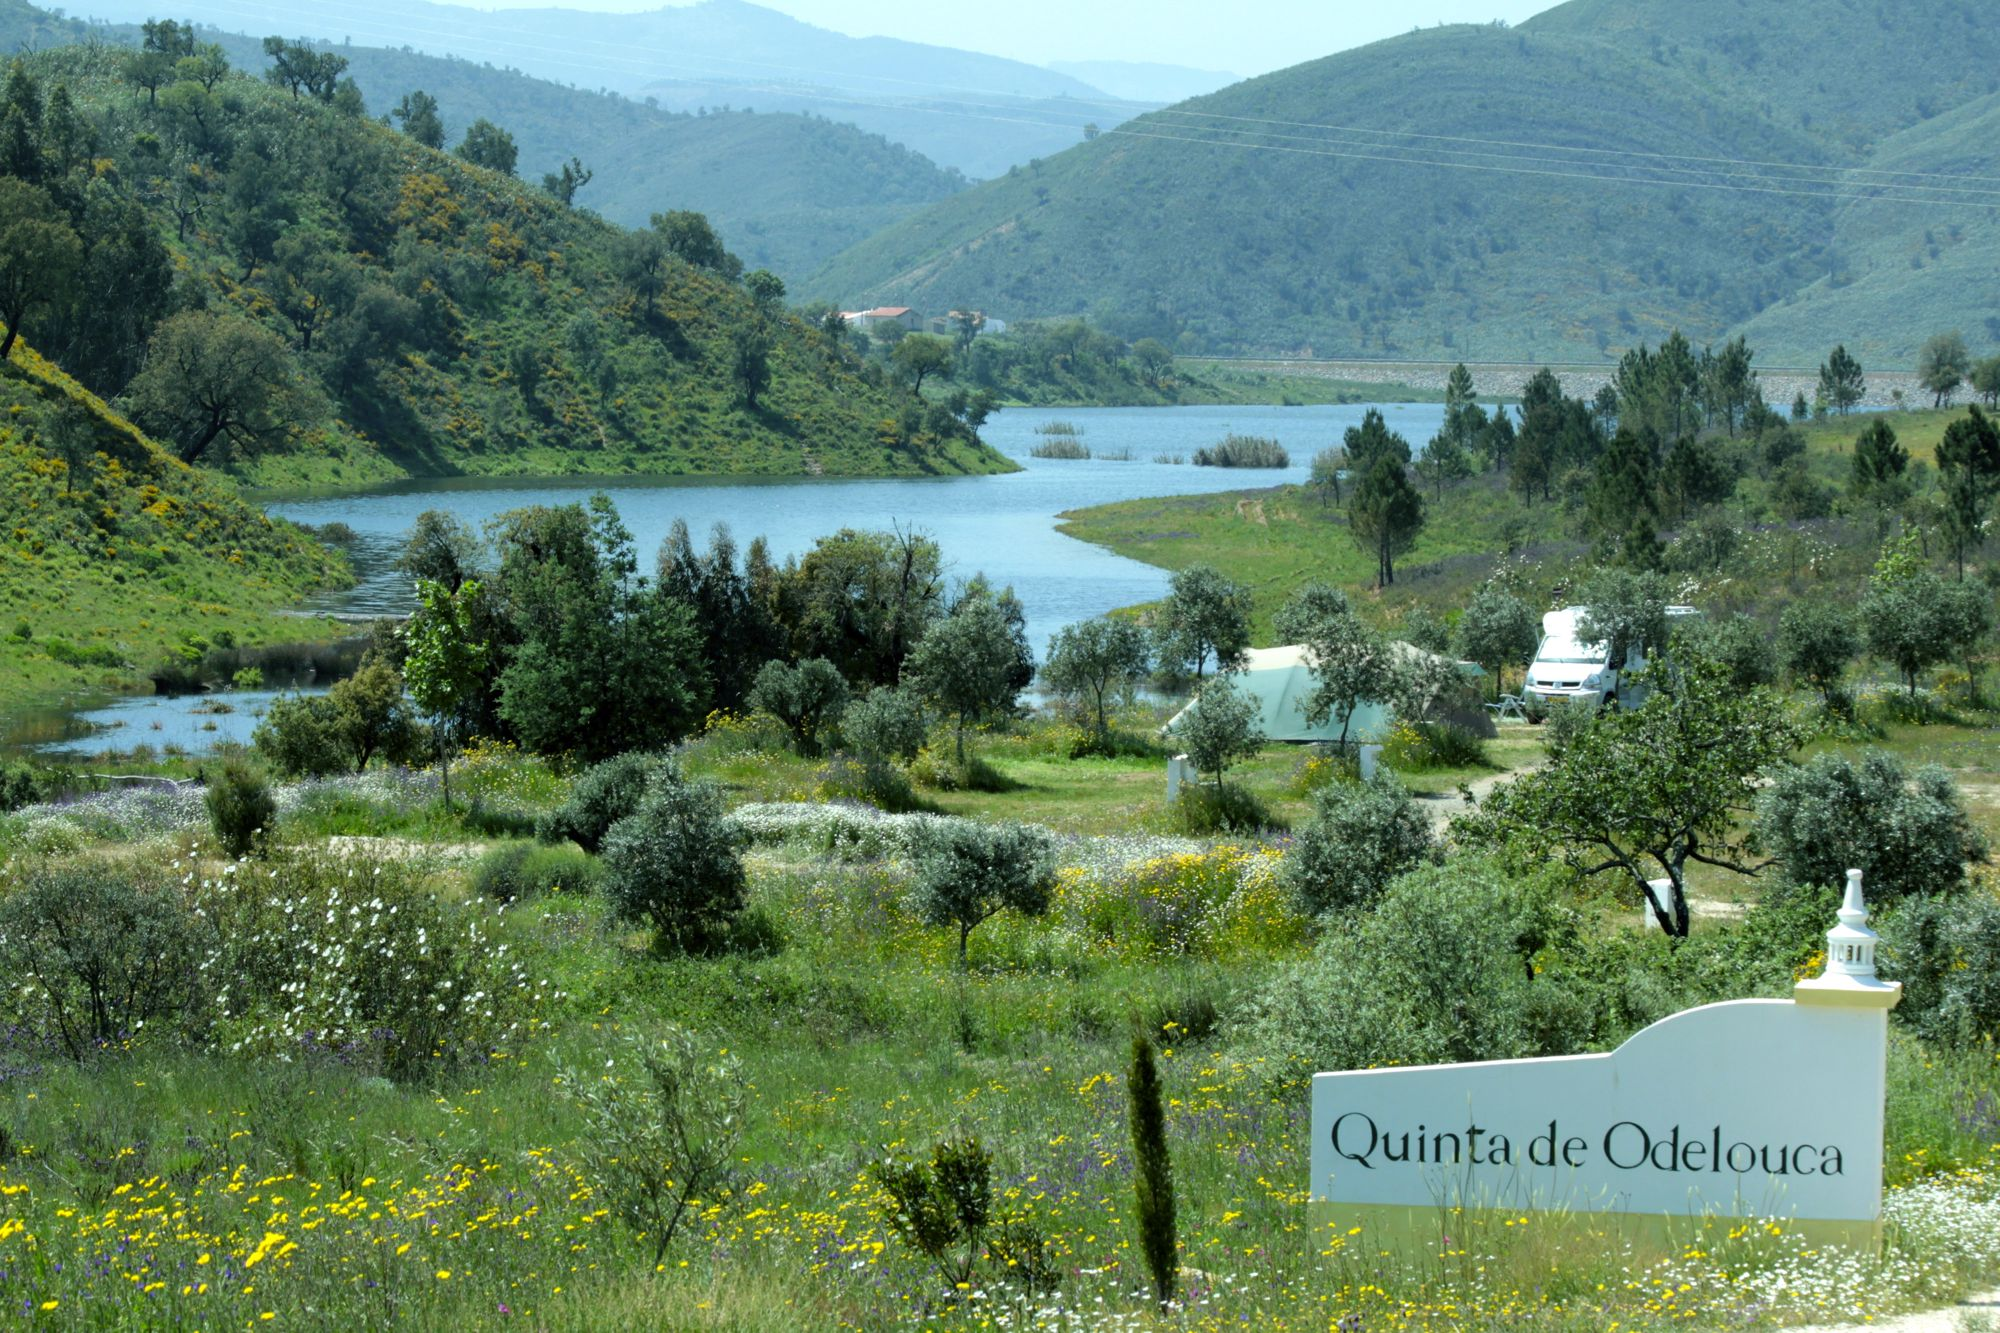 Laid-back camping in the Algarve's forested mountain range, with excellent options for walking, biking and canoeing.